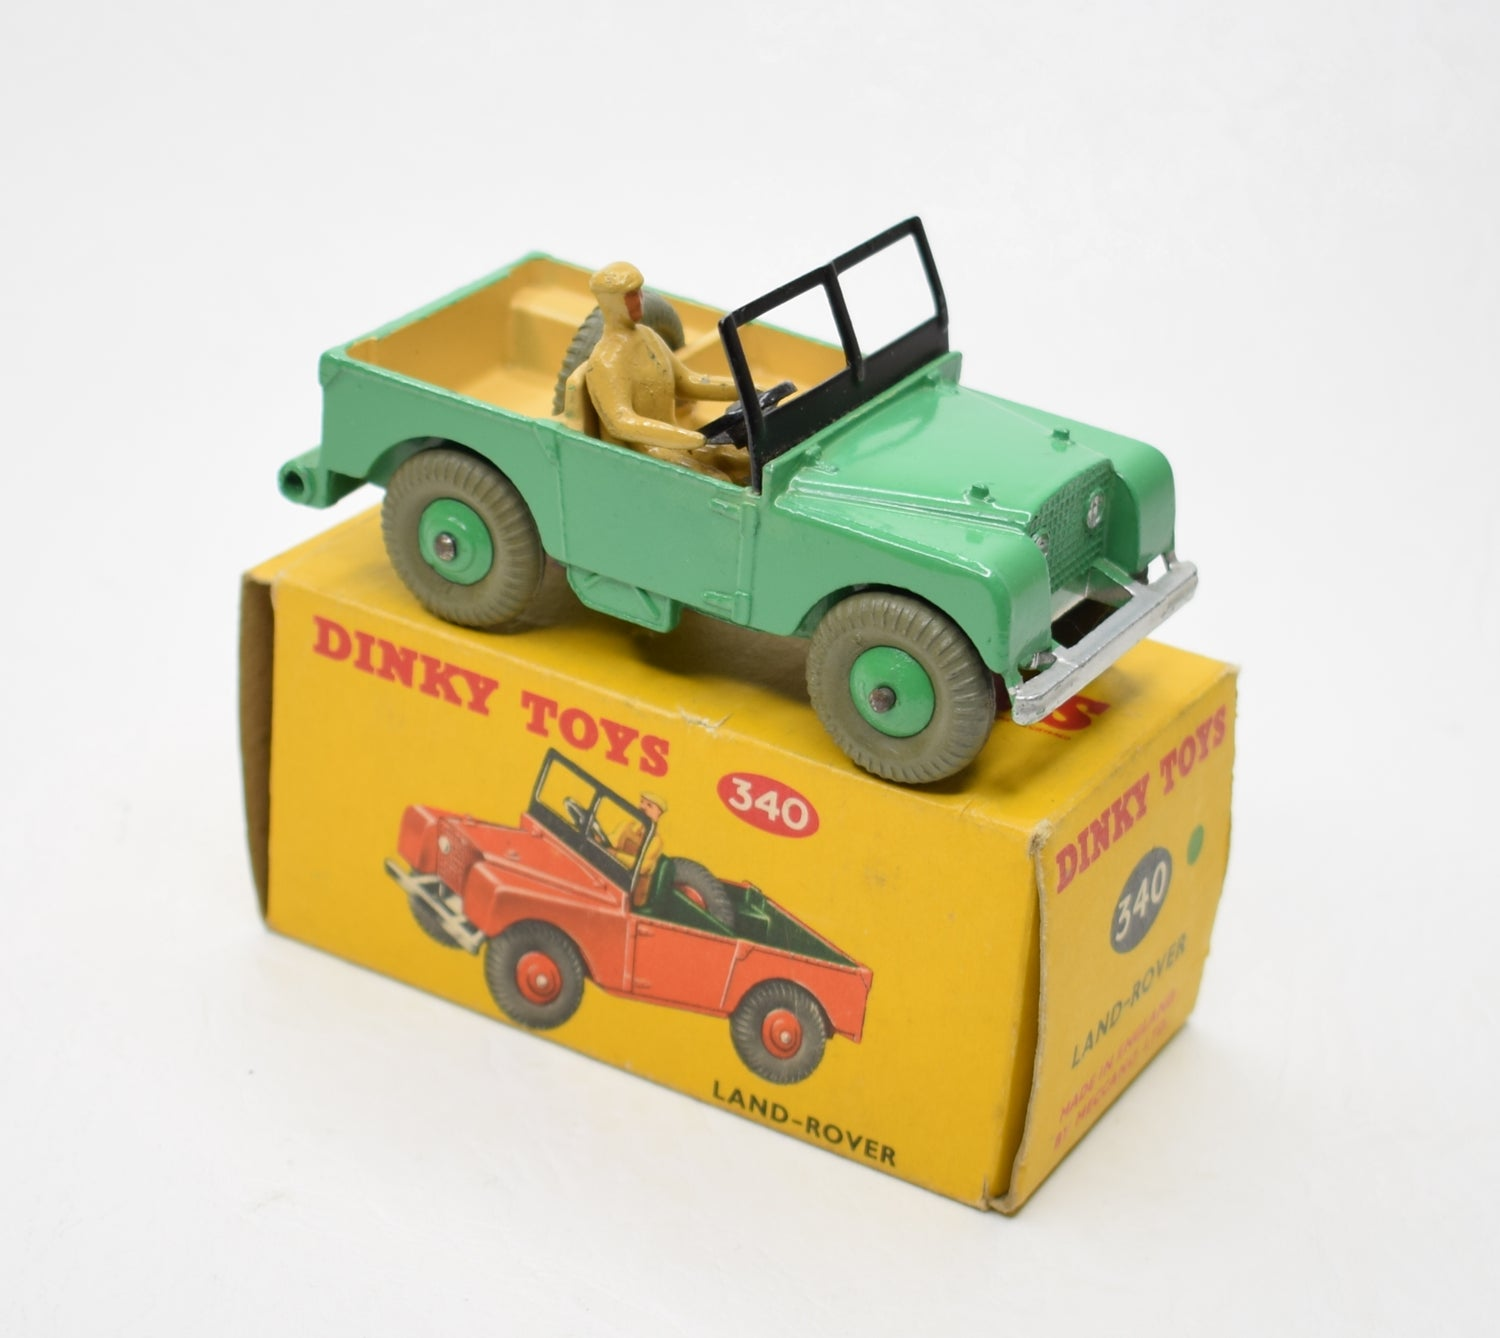 Dinky Toys 340 Land-Rover Very Near Mint/Boxed (C.C)